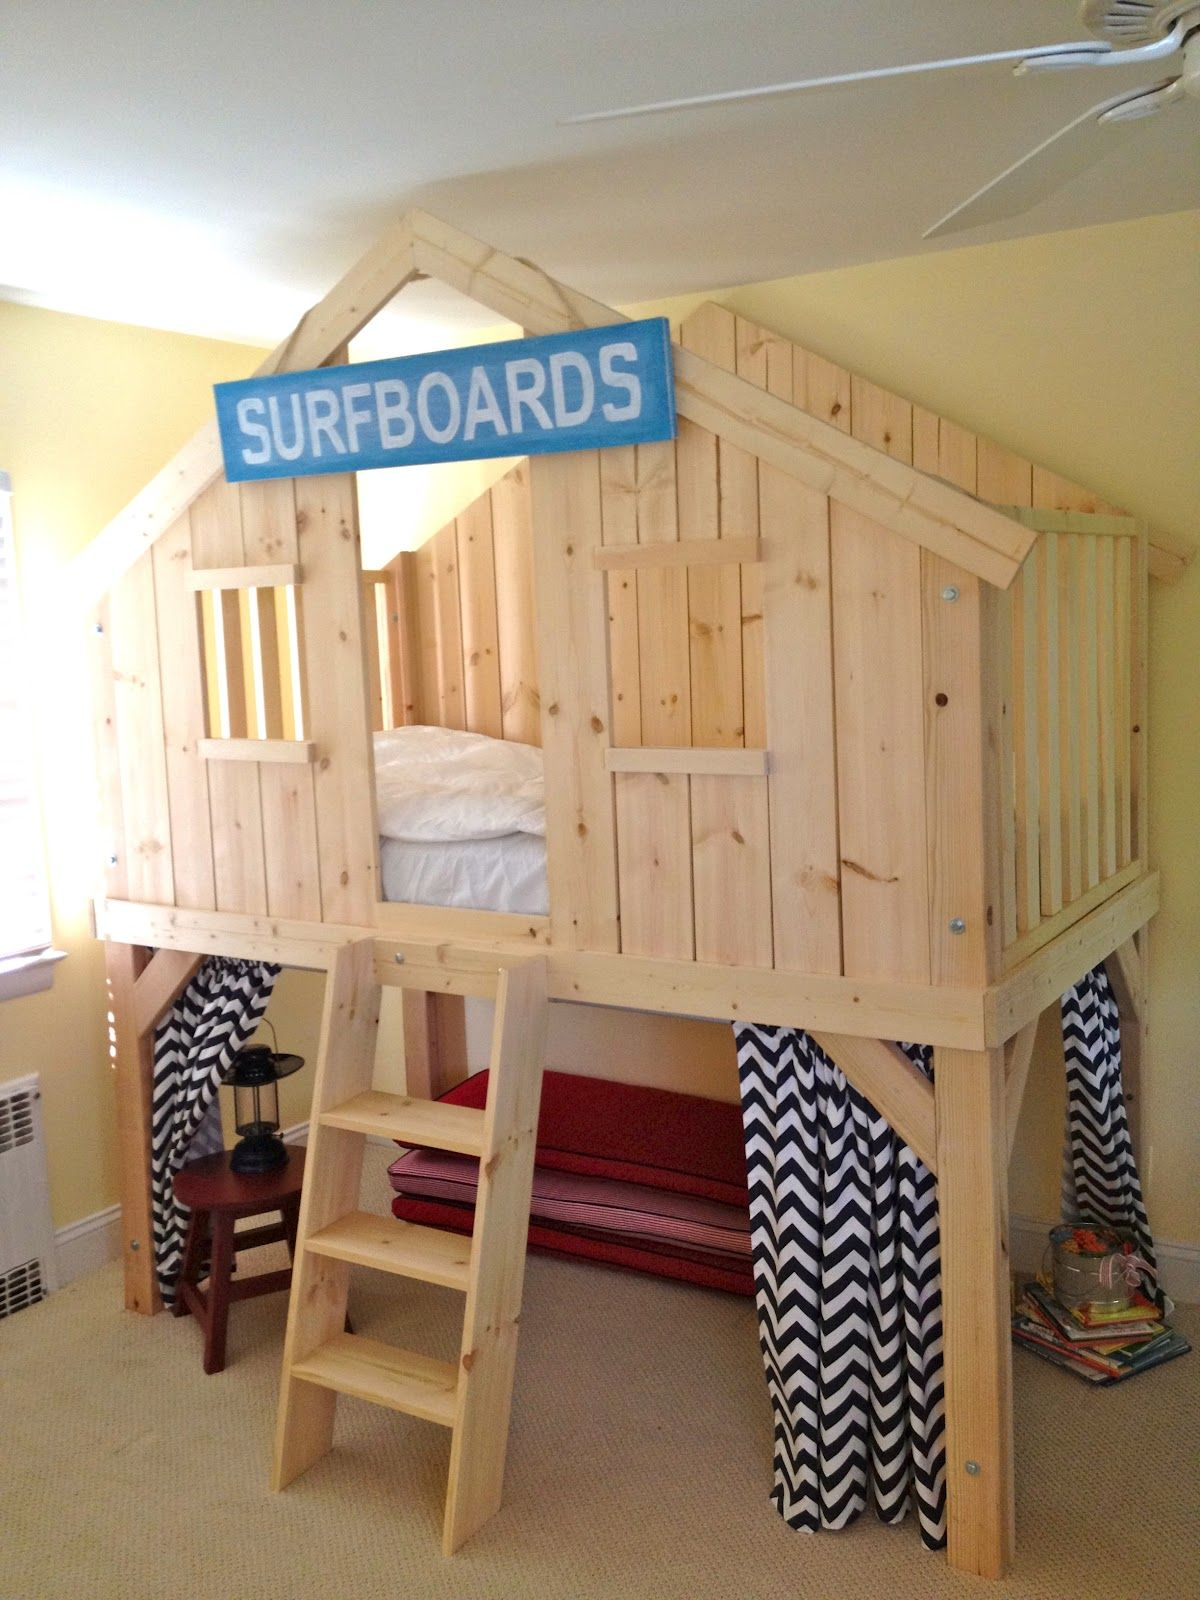 Loft bed ideas dorm   DIY Home Decorating Projects to Make  Clubhouses Kids rooms